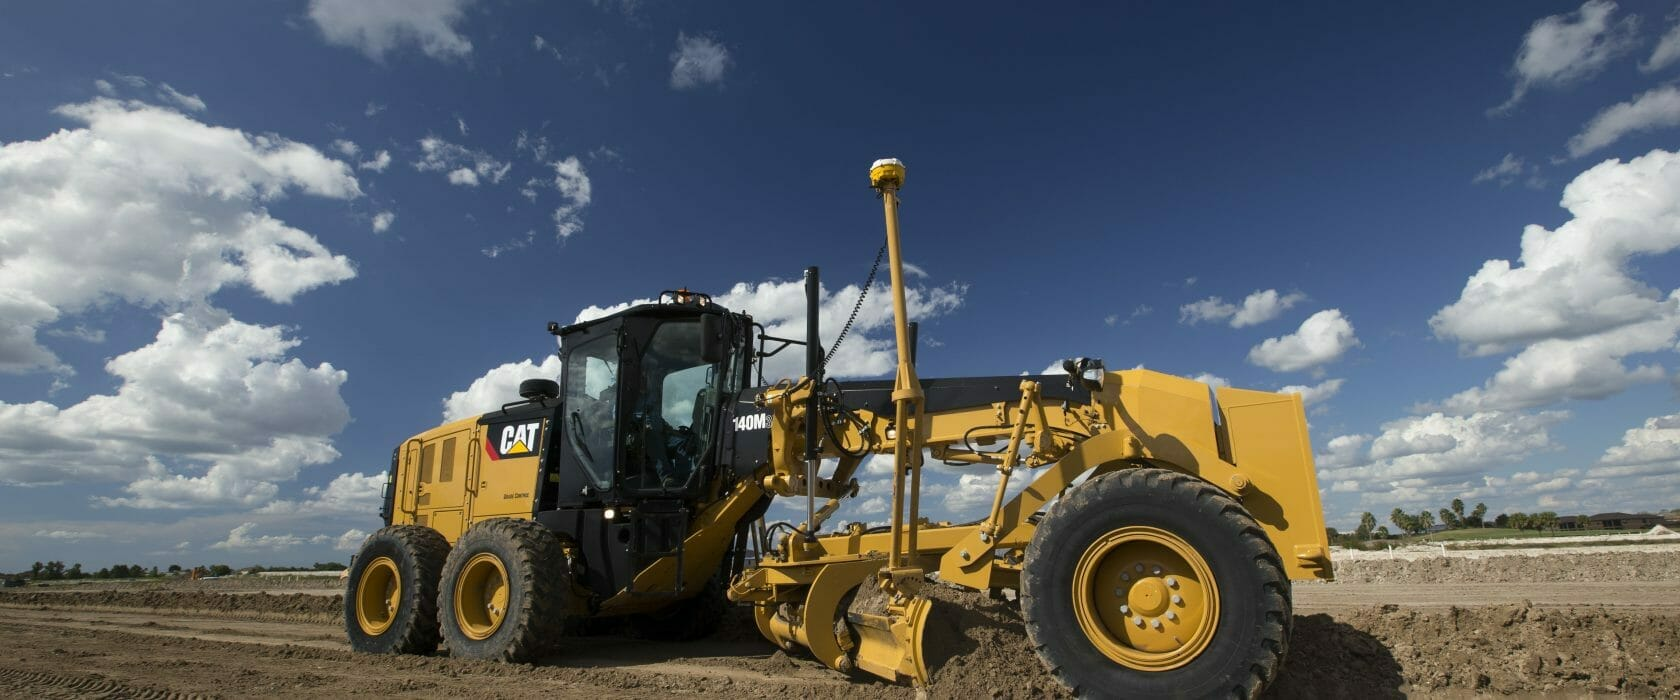 Construction Equipment Technology